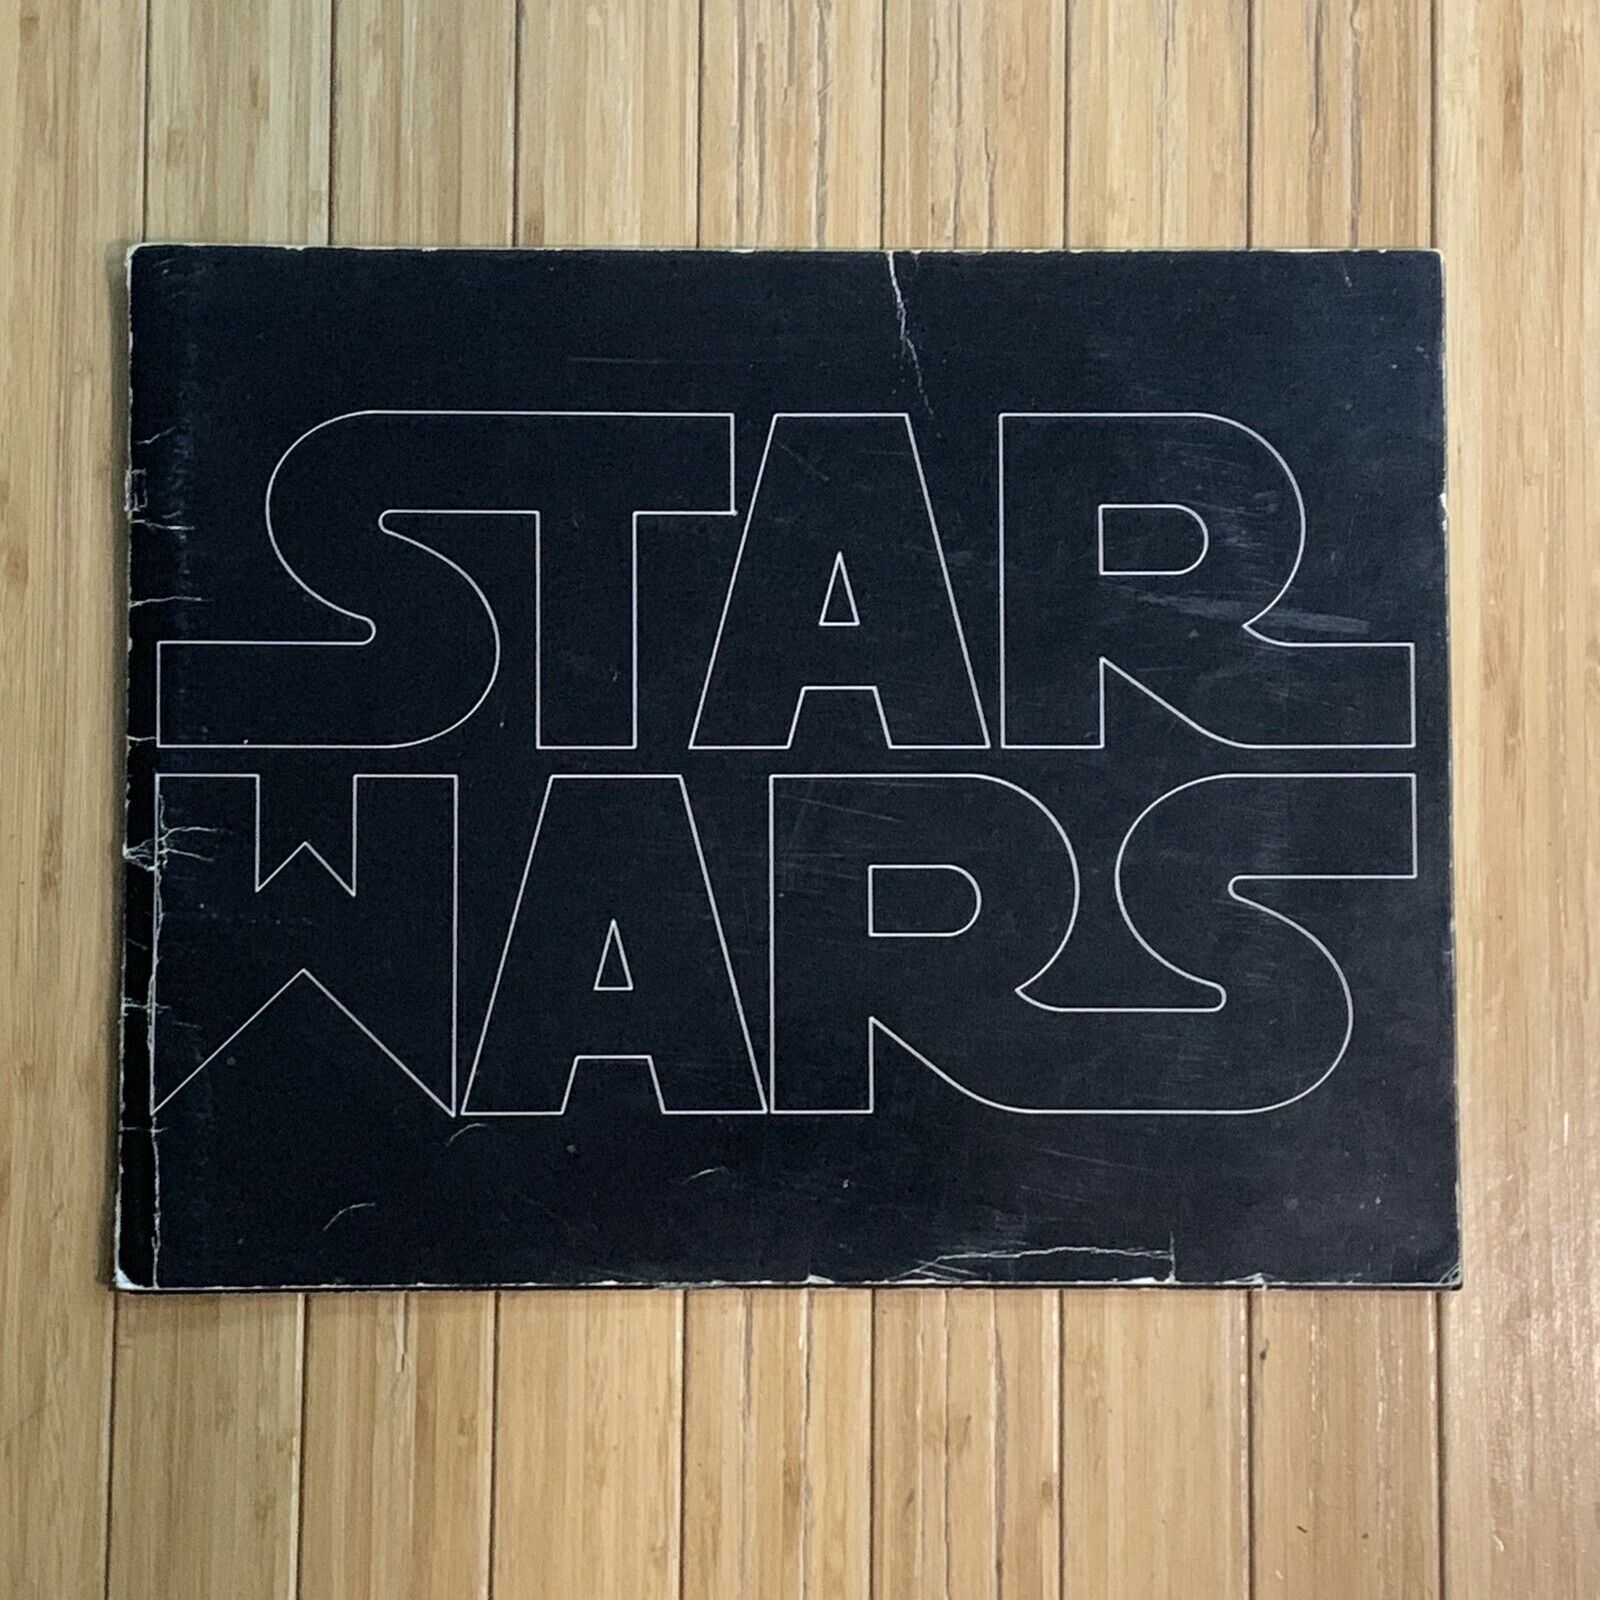 Star Wars 1977 Original Pressbook, Deluxe Exhibitors